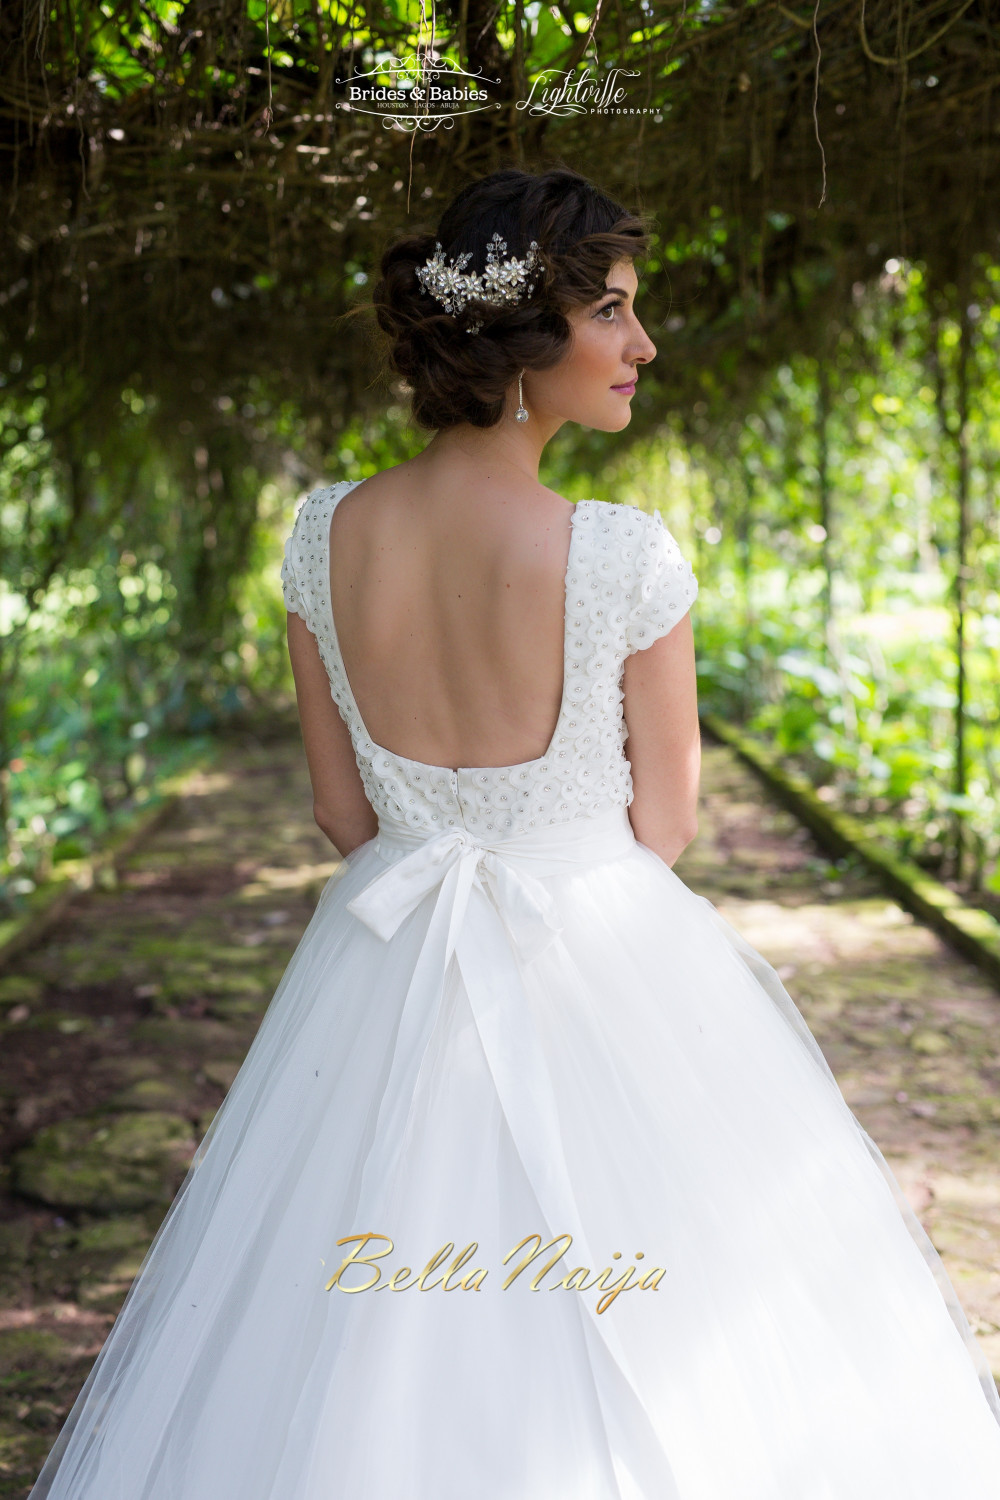 Brides & Babies Wedding Dresses 2015 on BellaNaija014